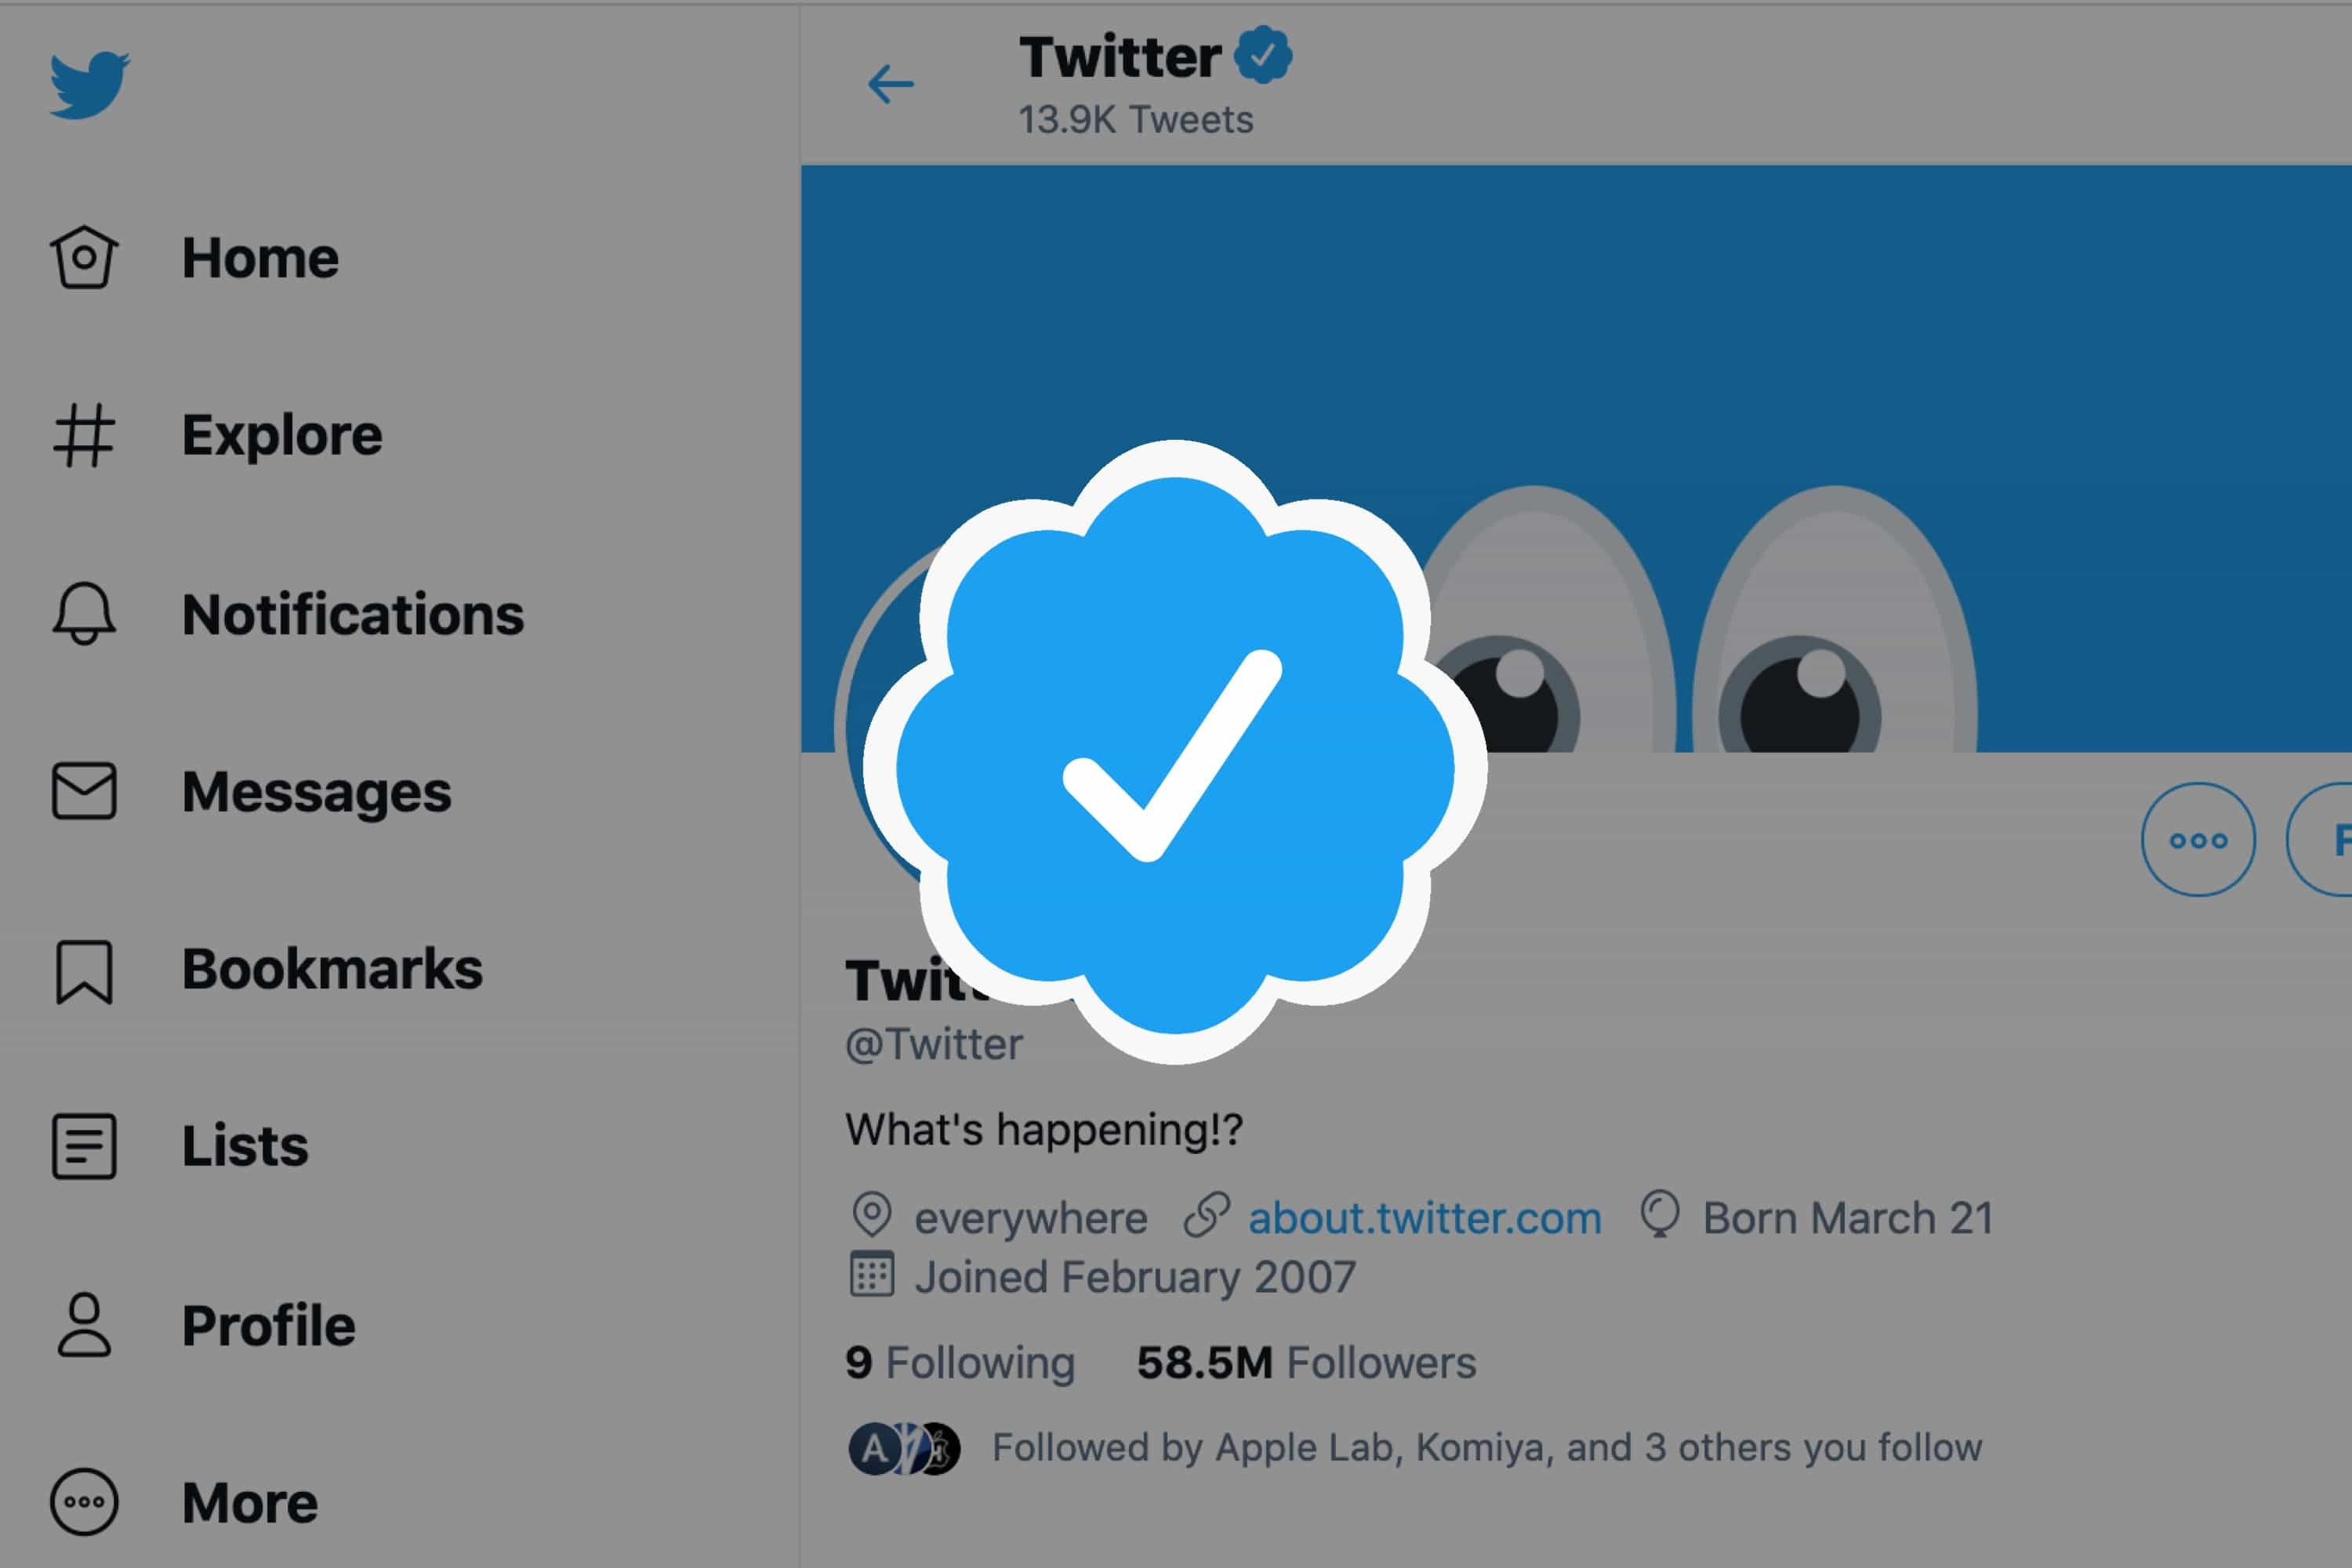 twitter-sets-verification-relaunch-for-2021-20201125-1